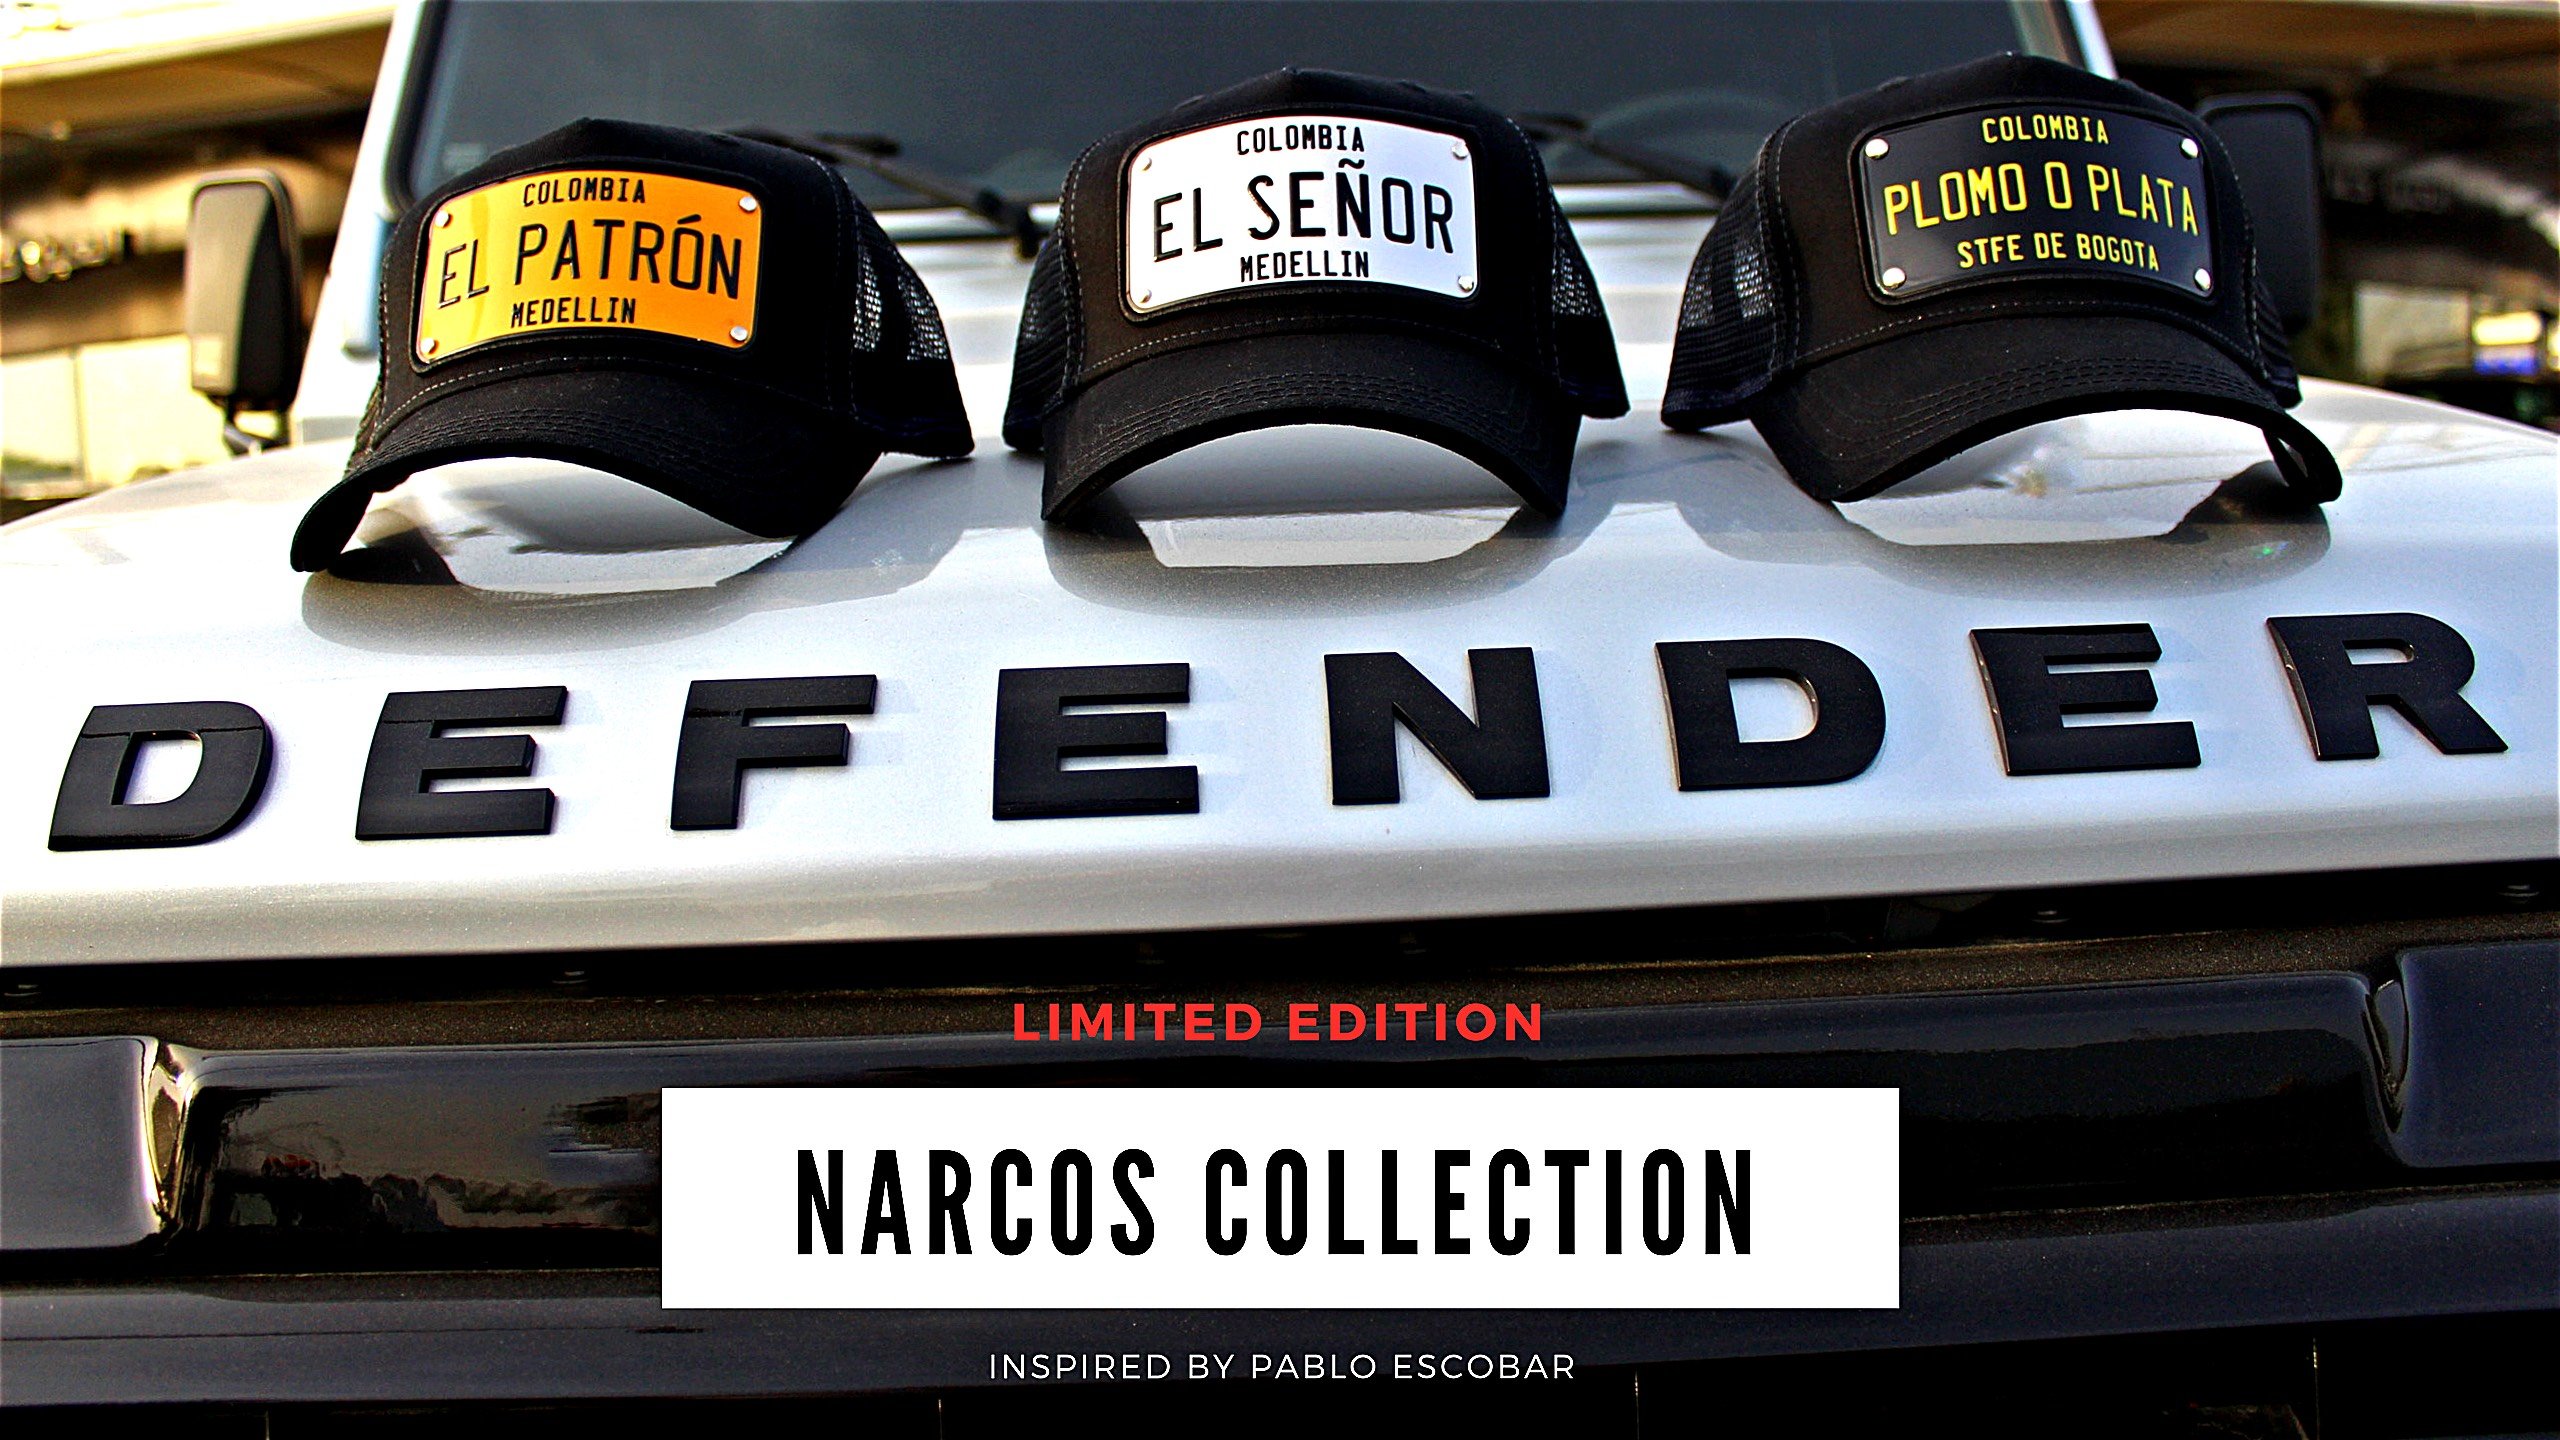 3.Narcos Limited Edition Pablo escobar